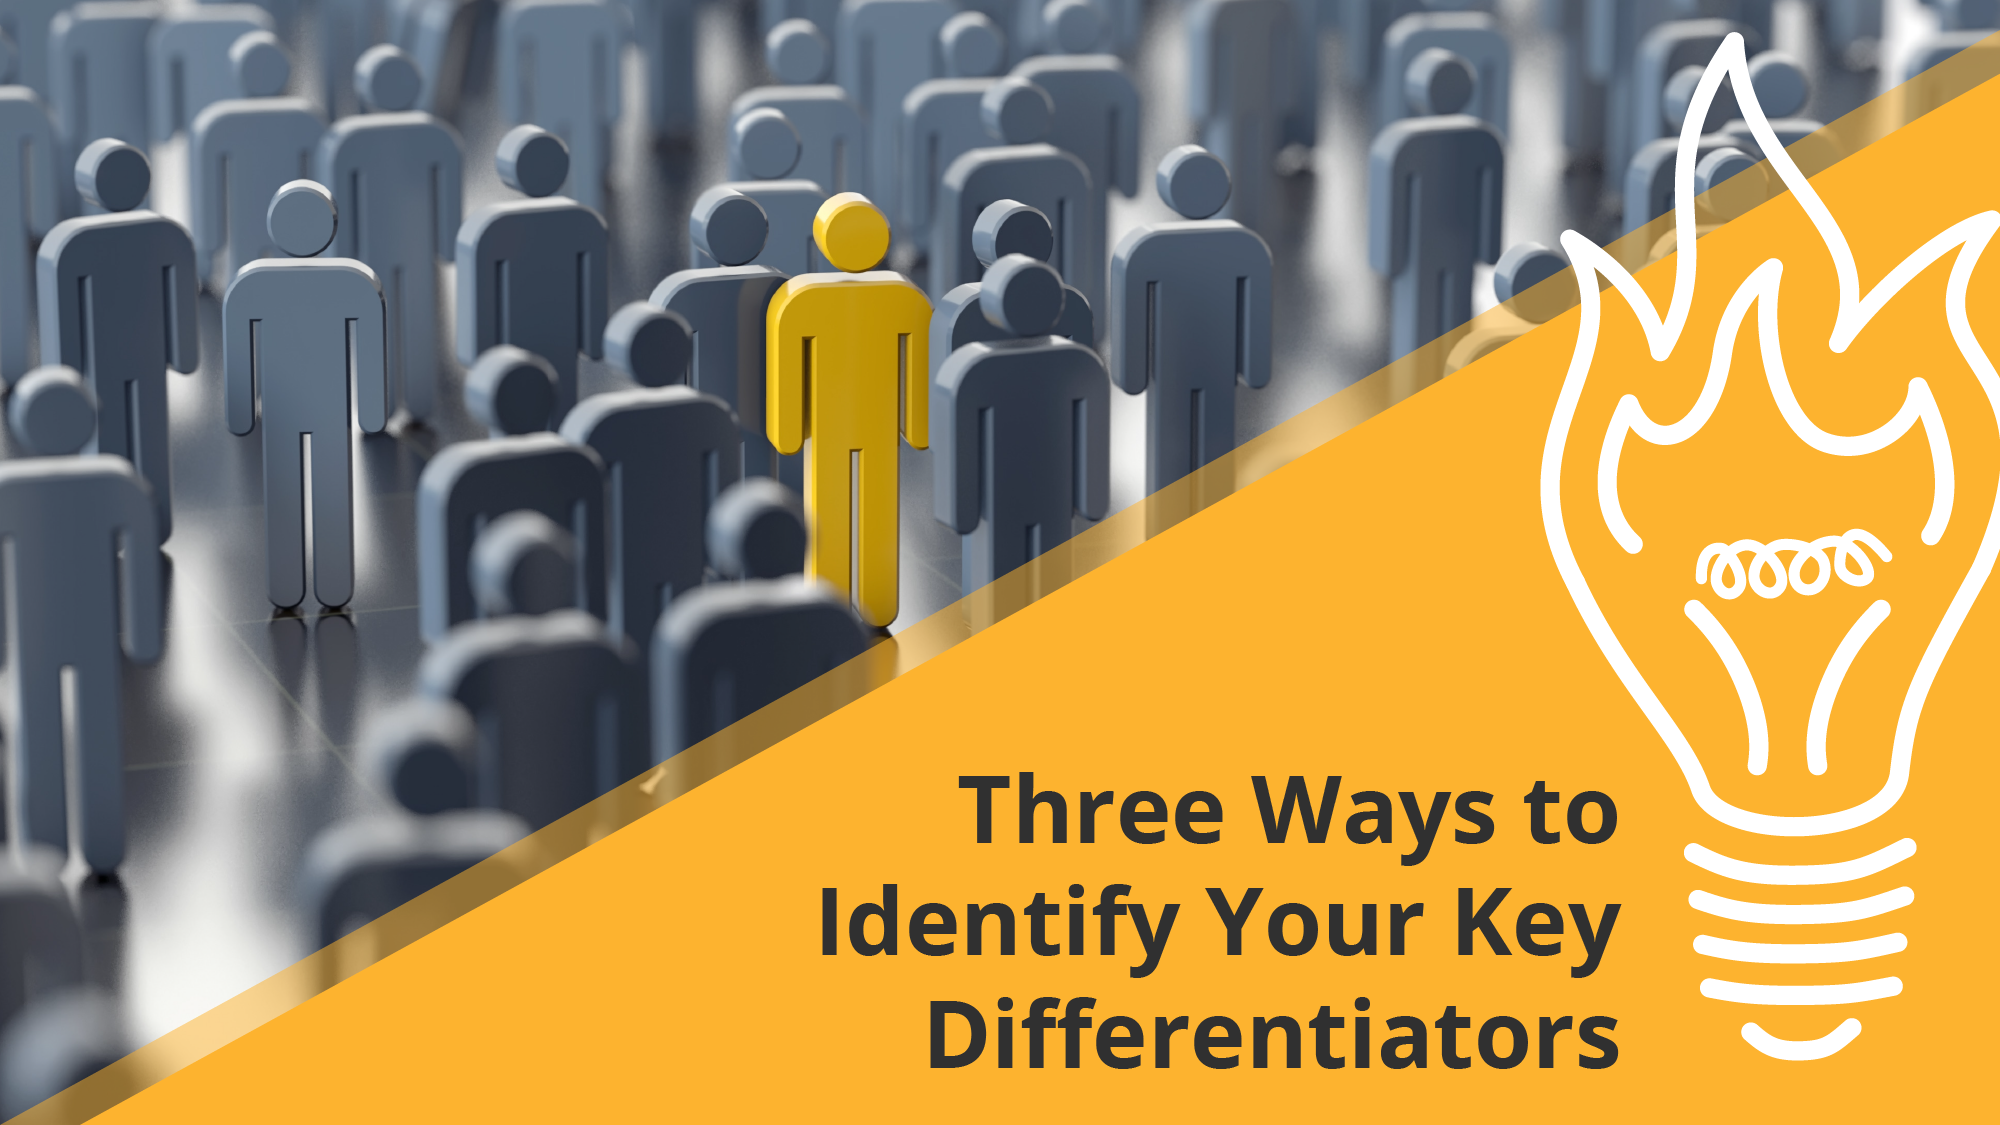 Ways to identify key differentiators for your startup